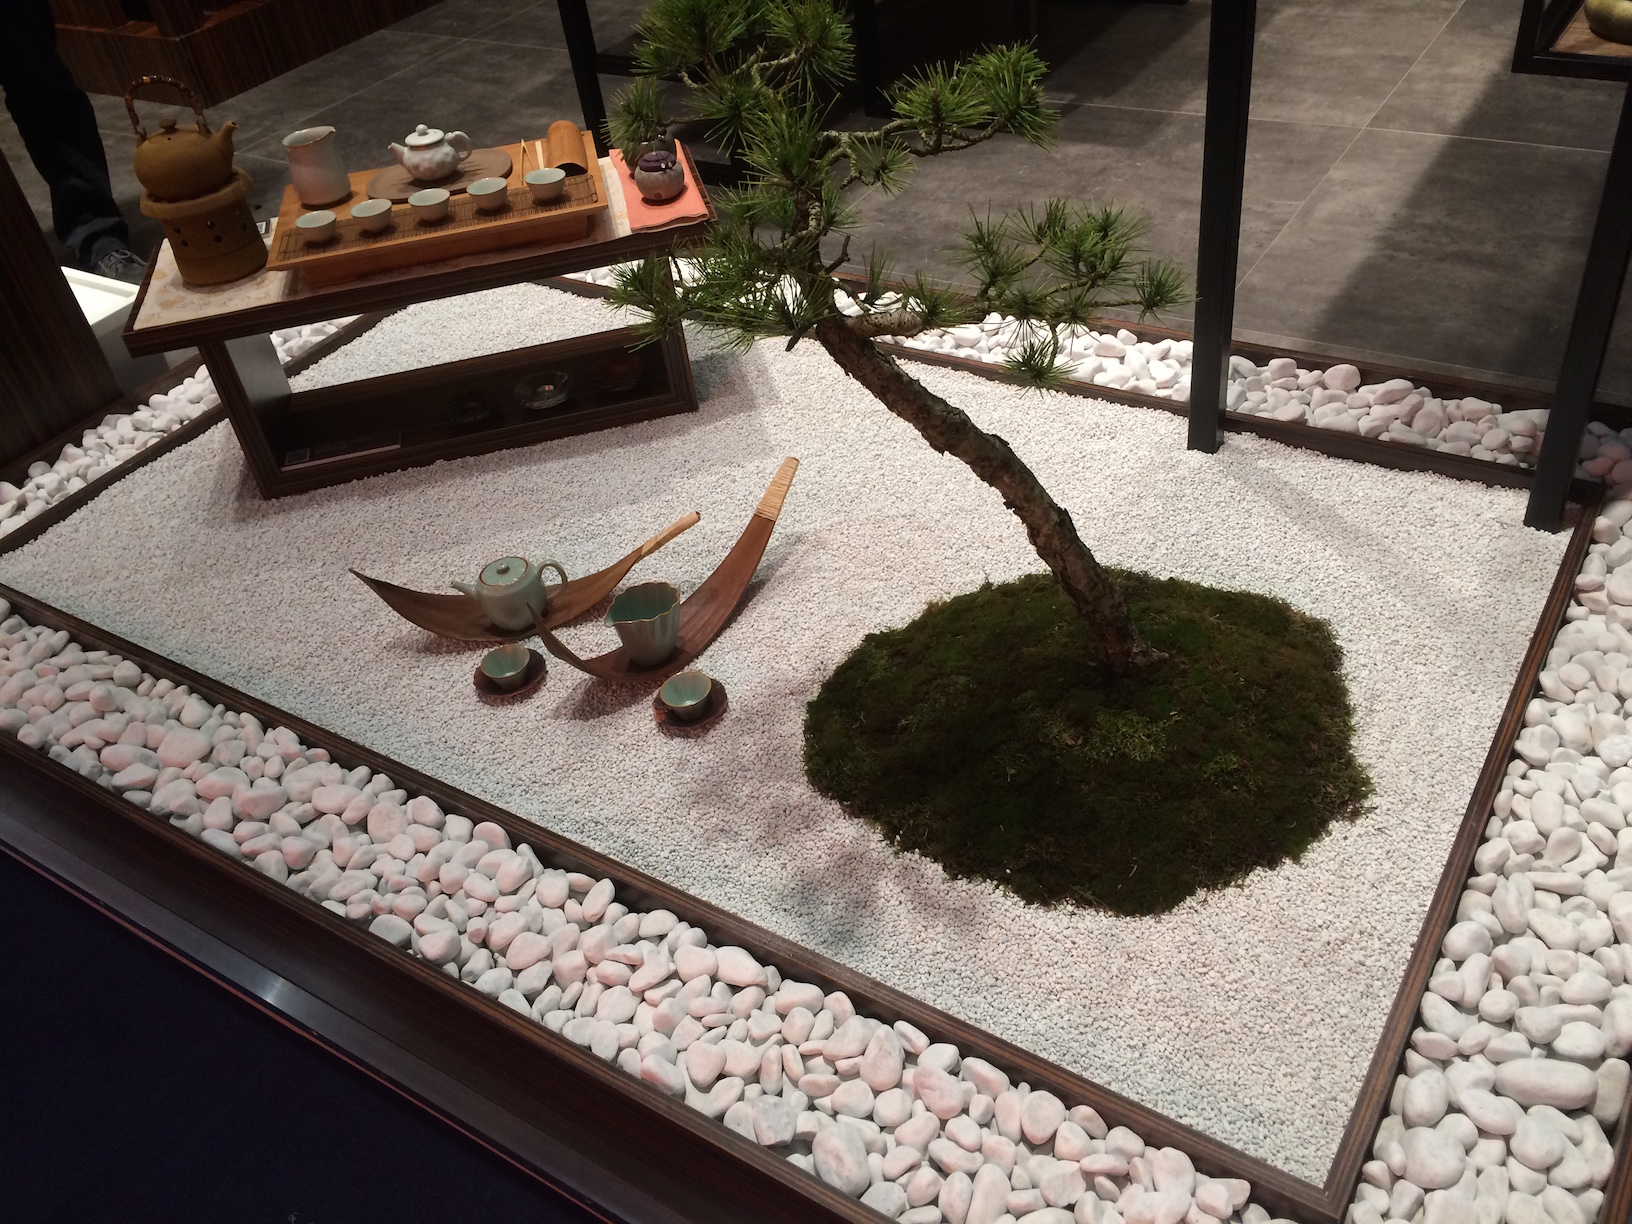 On y tait le salon des arts de la table de francfort for Jardin zen interieur